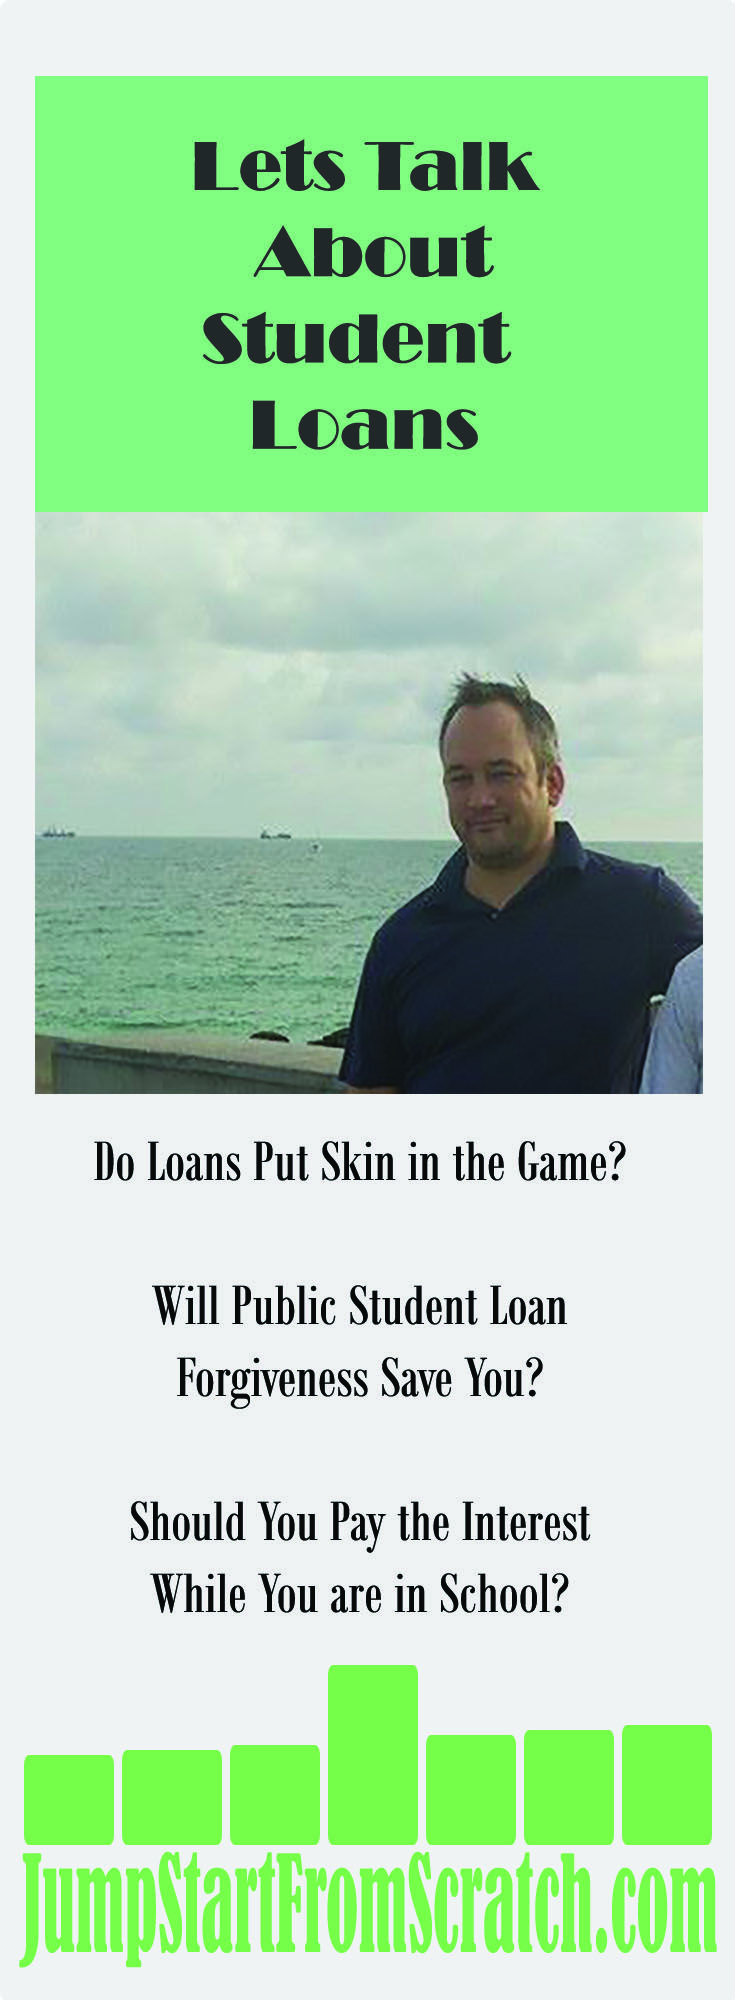 College loans.  Interest rates.  Loan forgiveness.  Skin in the game. http://www.jumpstartfromscratch.com/student-loans/